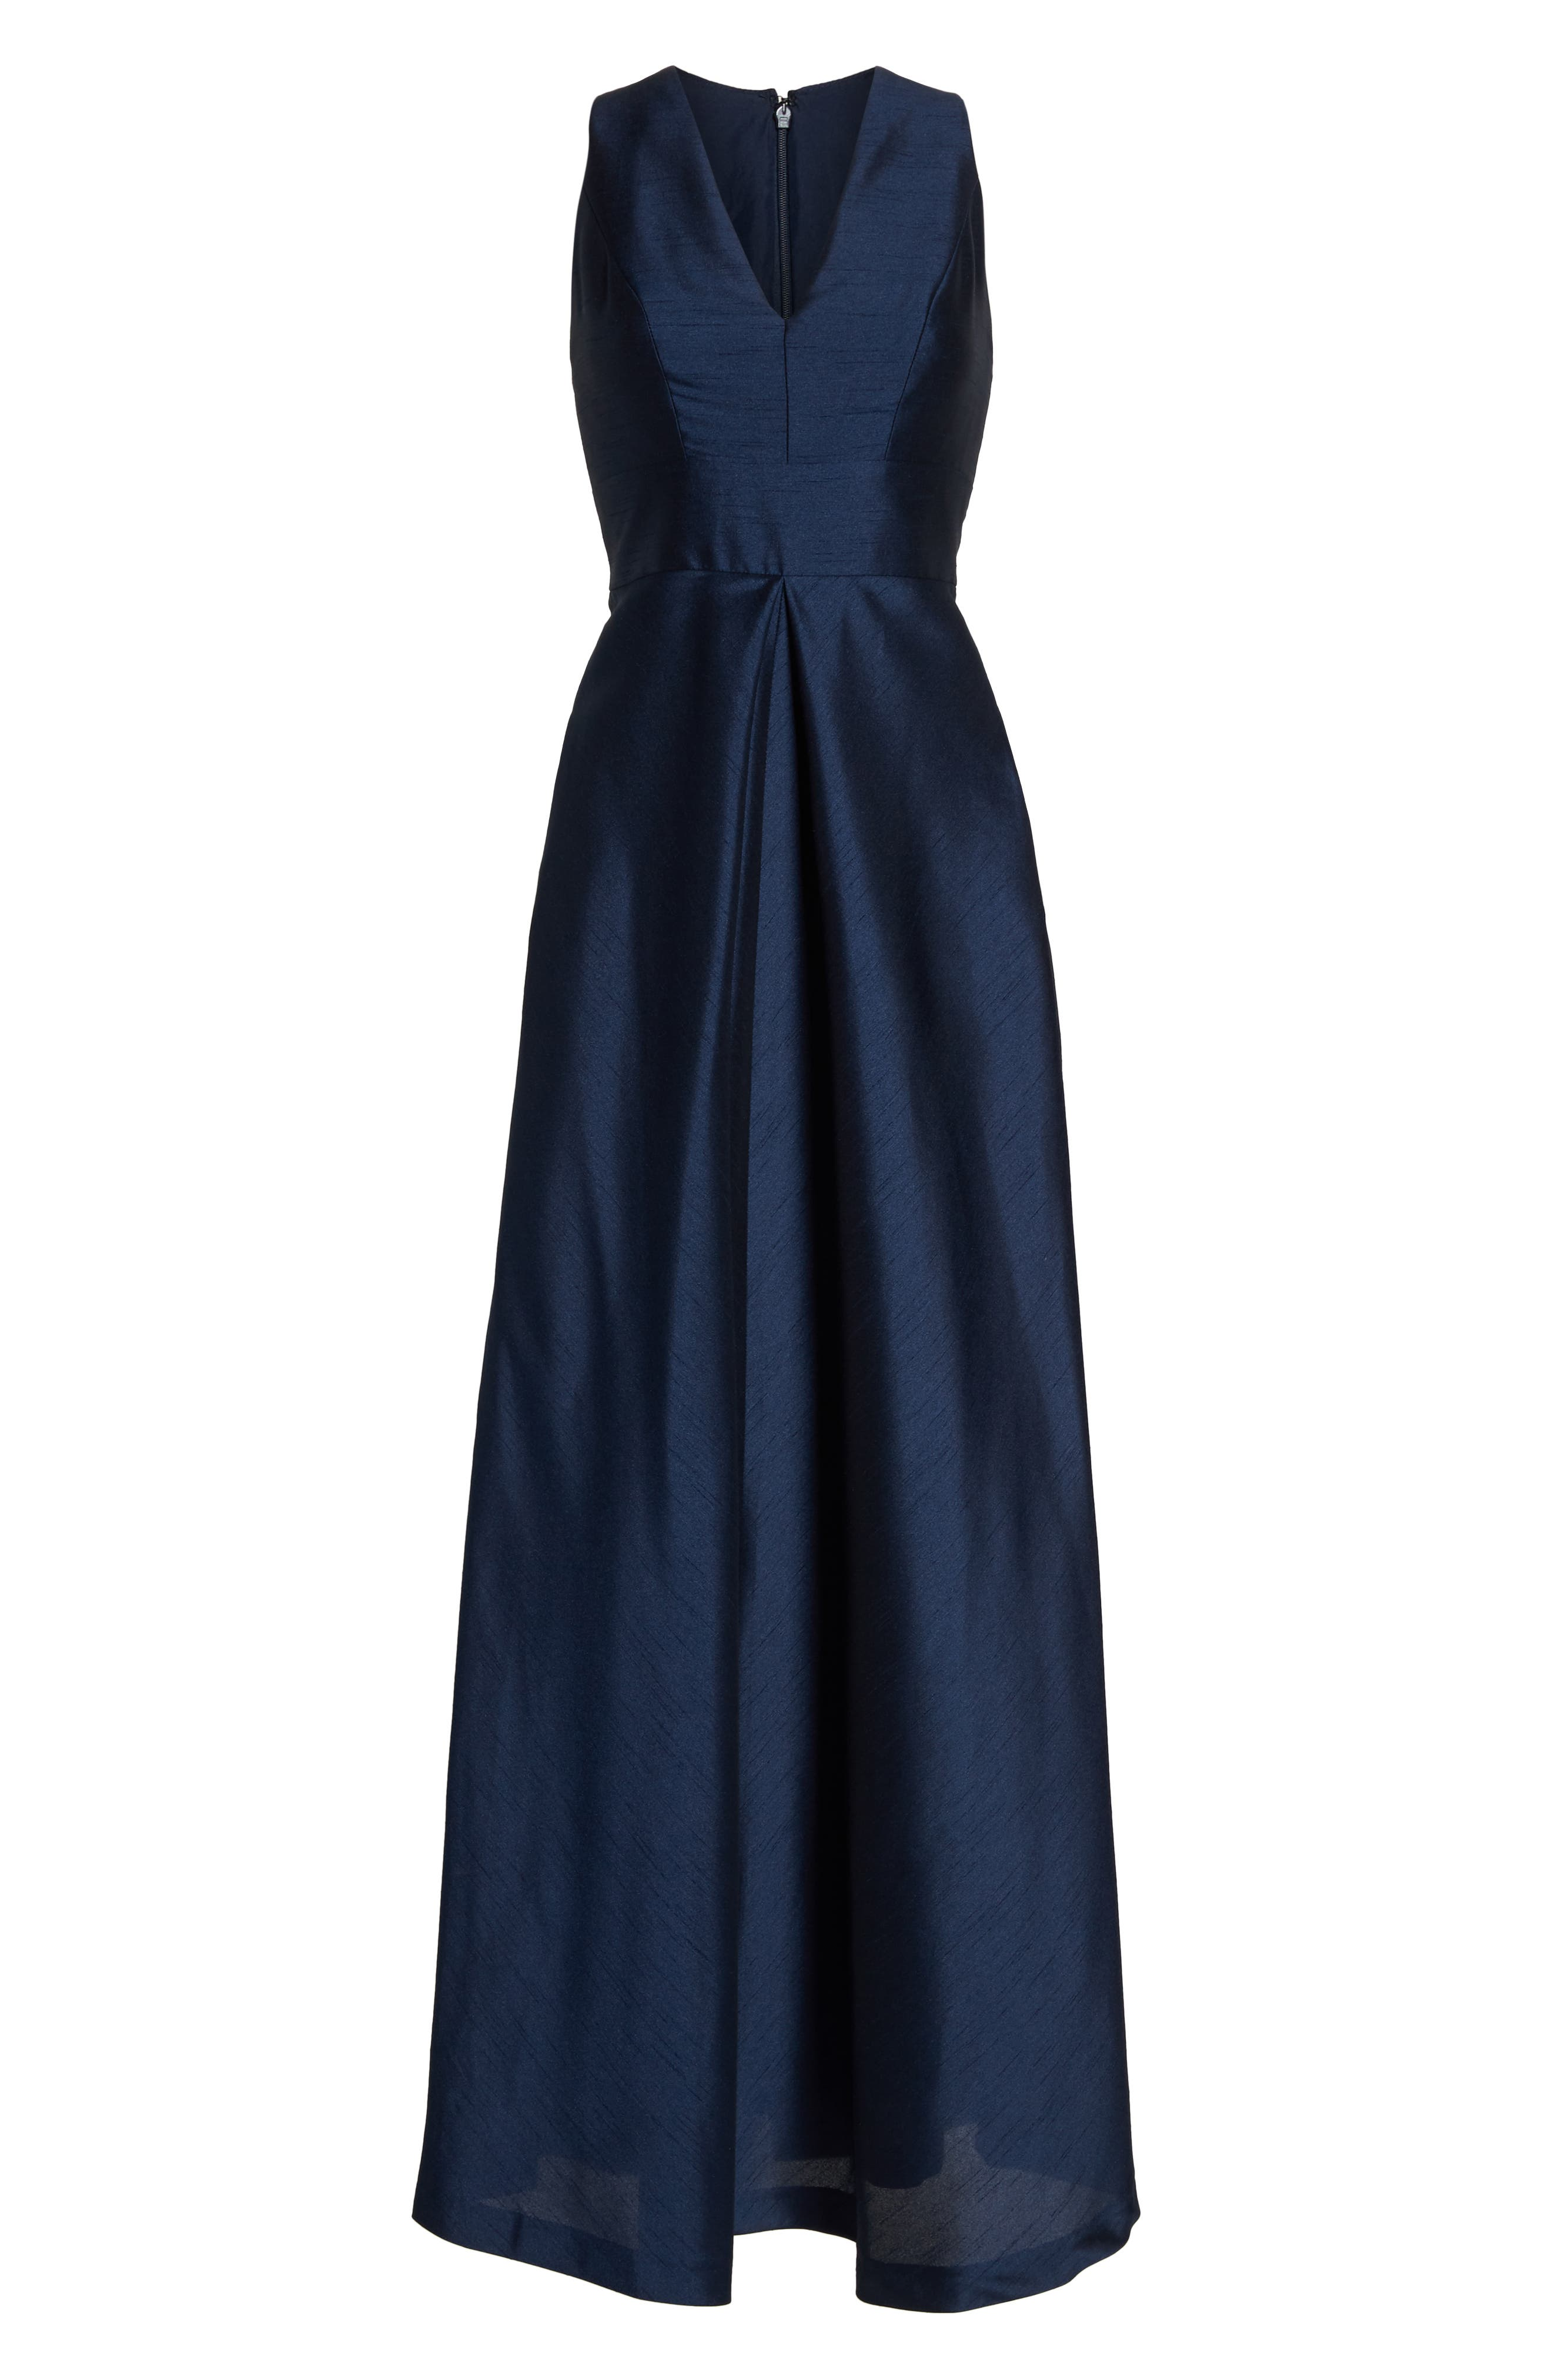 1960s Evening Dresses, Bridesmaids, Mothers Gowns Womens Alfred Sung Dupioni A-Line Gown Size 10 - Blue $242.00 AT vintagedancer.com